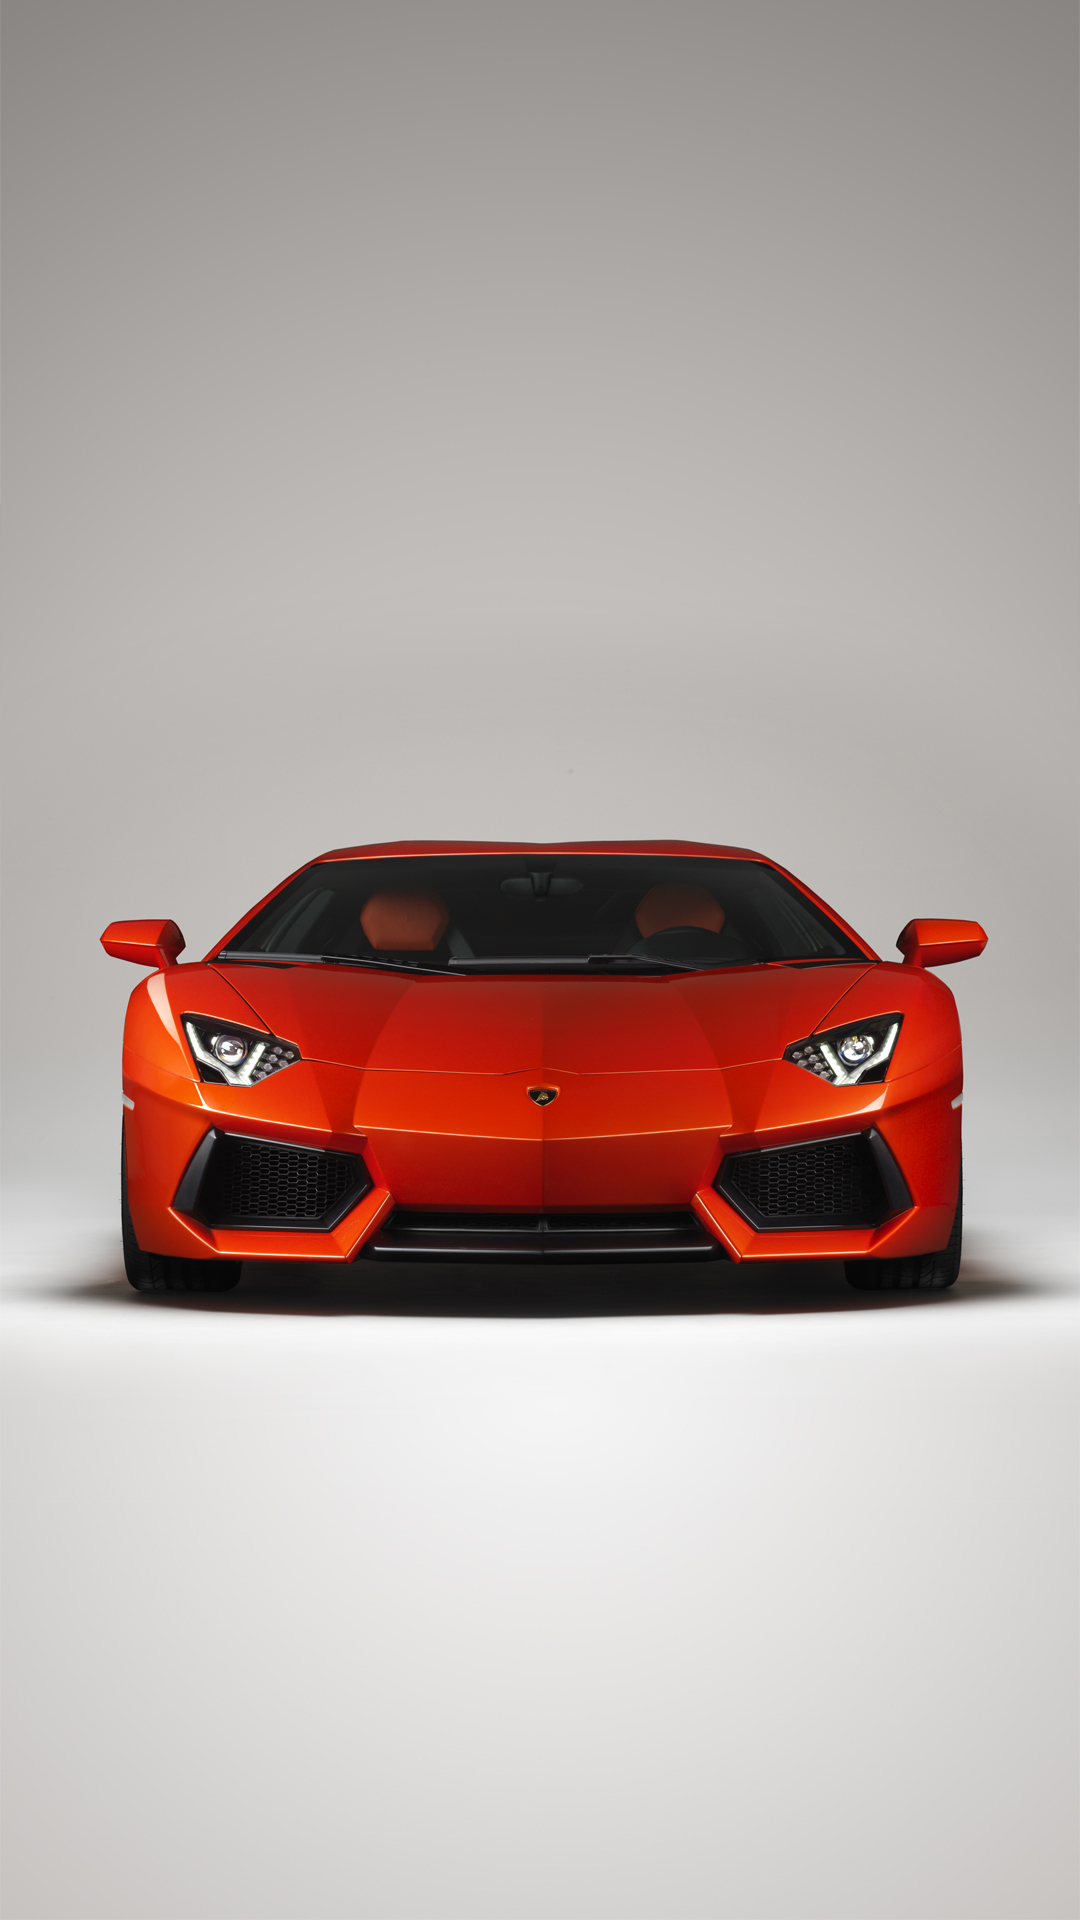 Htc One M8 Wallpaper Hd Lamborghini Aventador Best Htc One Wallpapers Free And